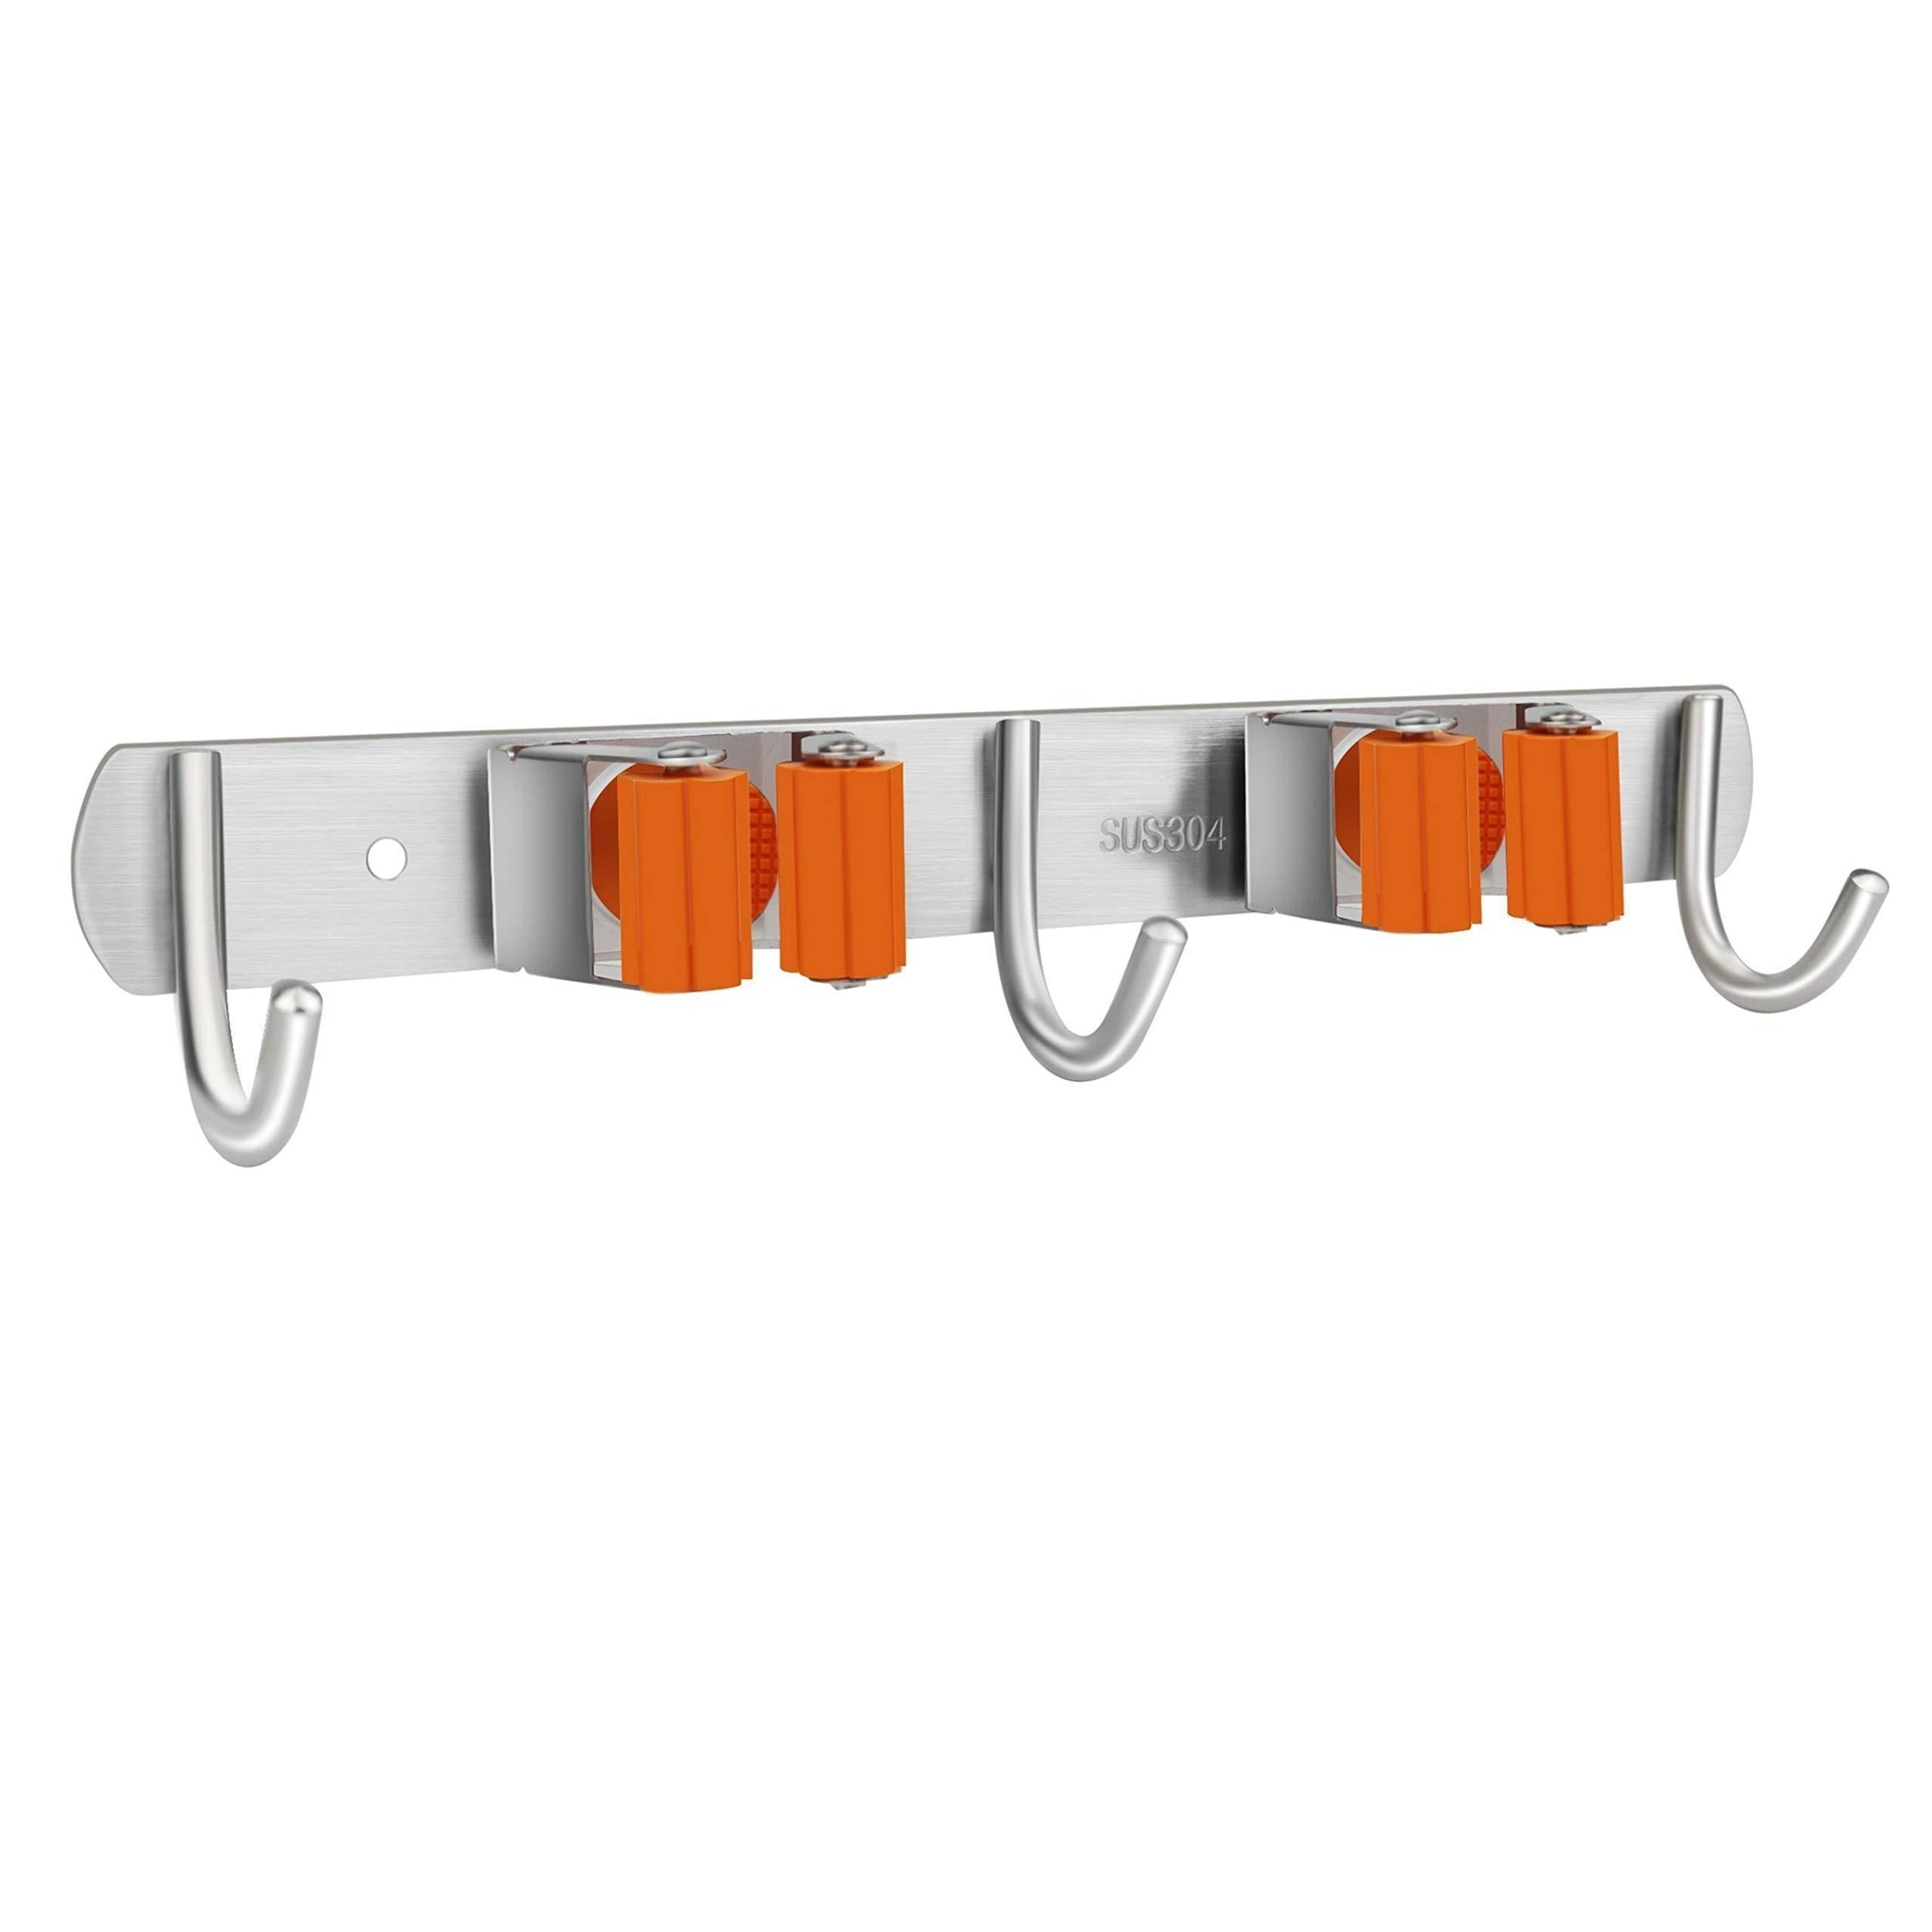 Budget friendly vodolo mop broom holder wall mount garden tool organizer stainless steel duty organizer with 2 racks 3 hooks for kitchen bathroom closet garage office laundry screw or adhesive installation orange